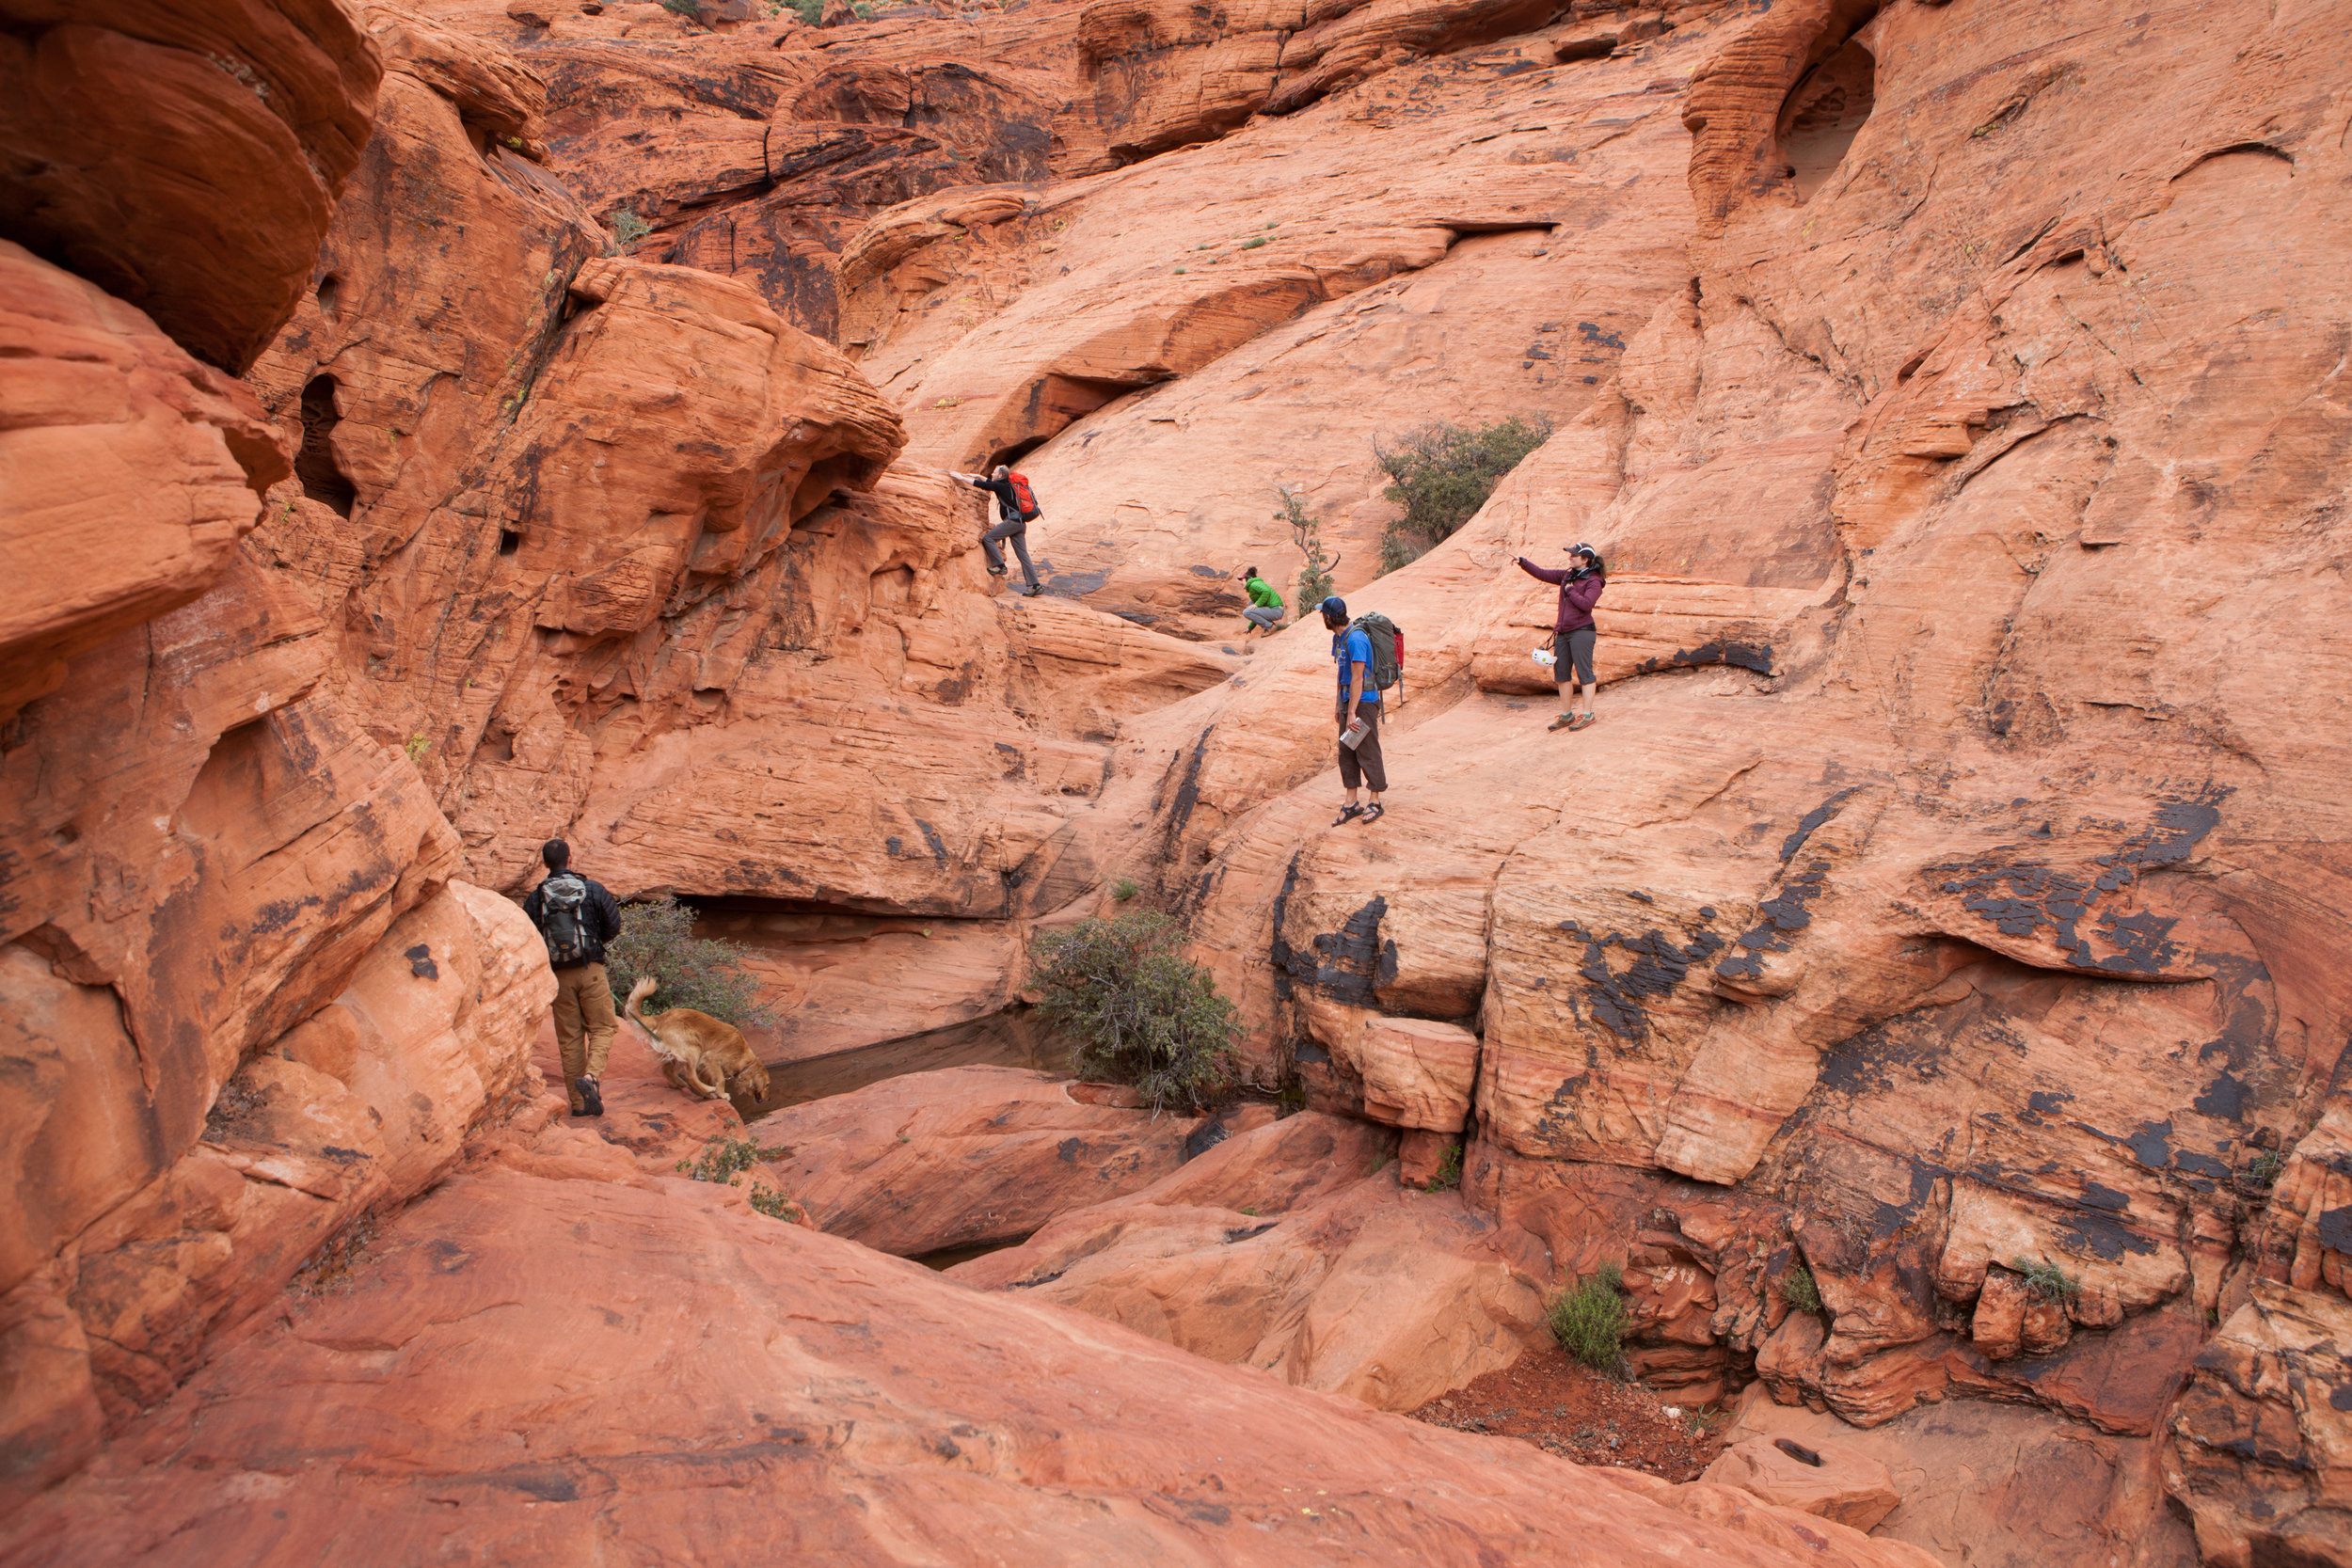 Climbers navigate a small channel through the rock at the Red Rock Canyon National Conservation Area in Nevada.